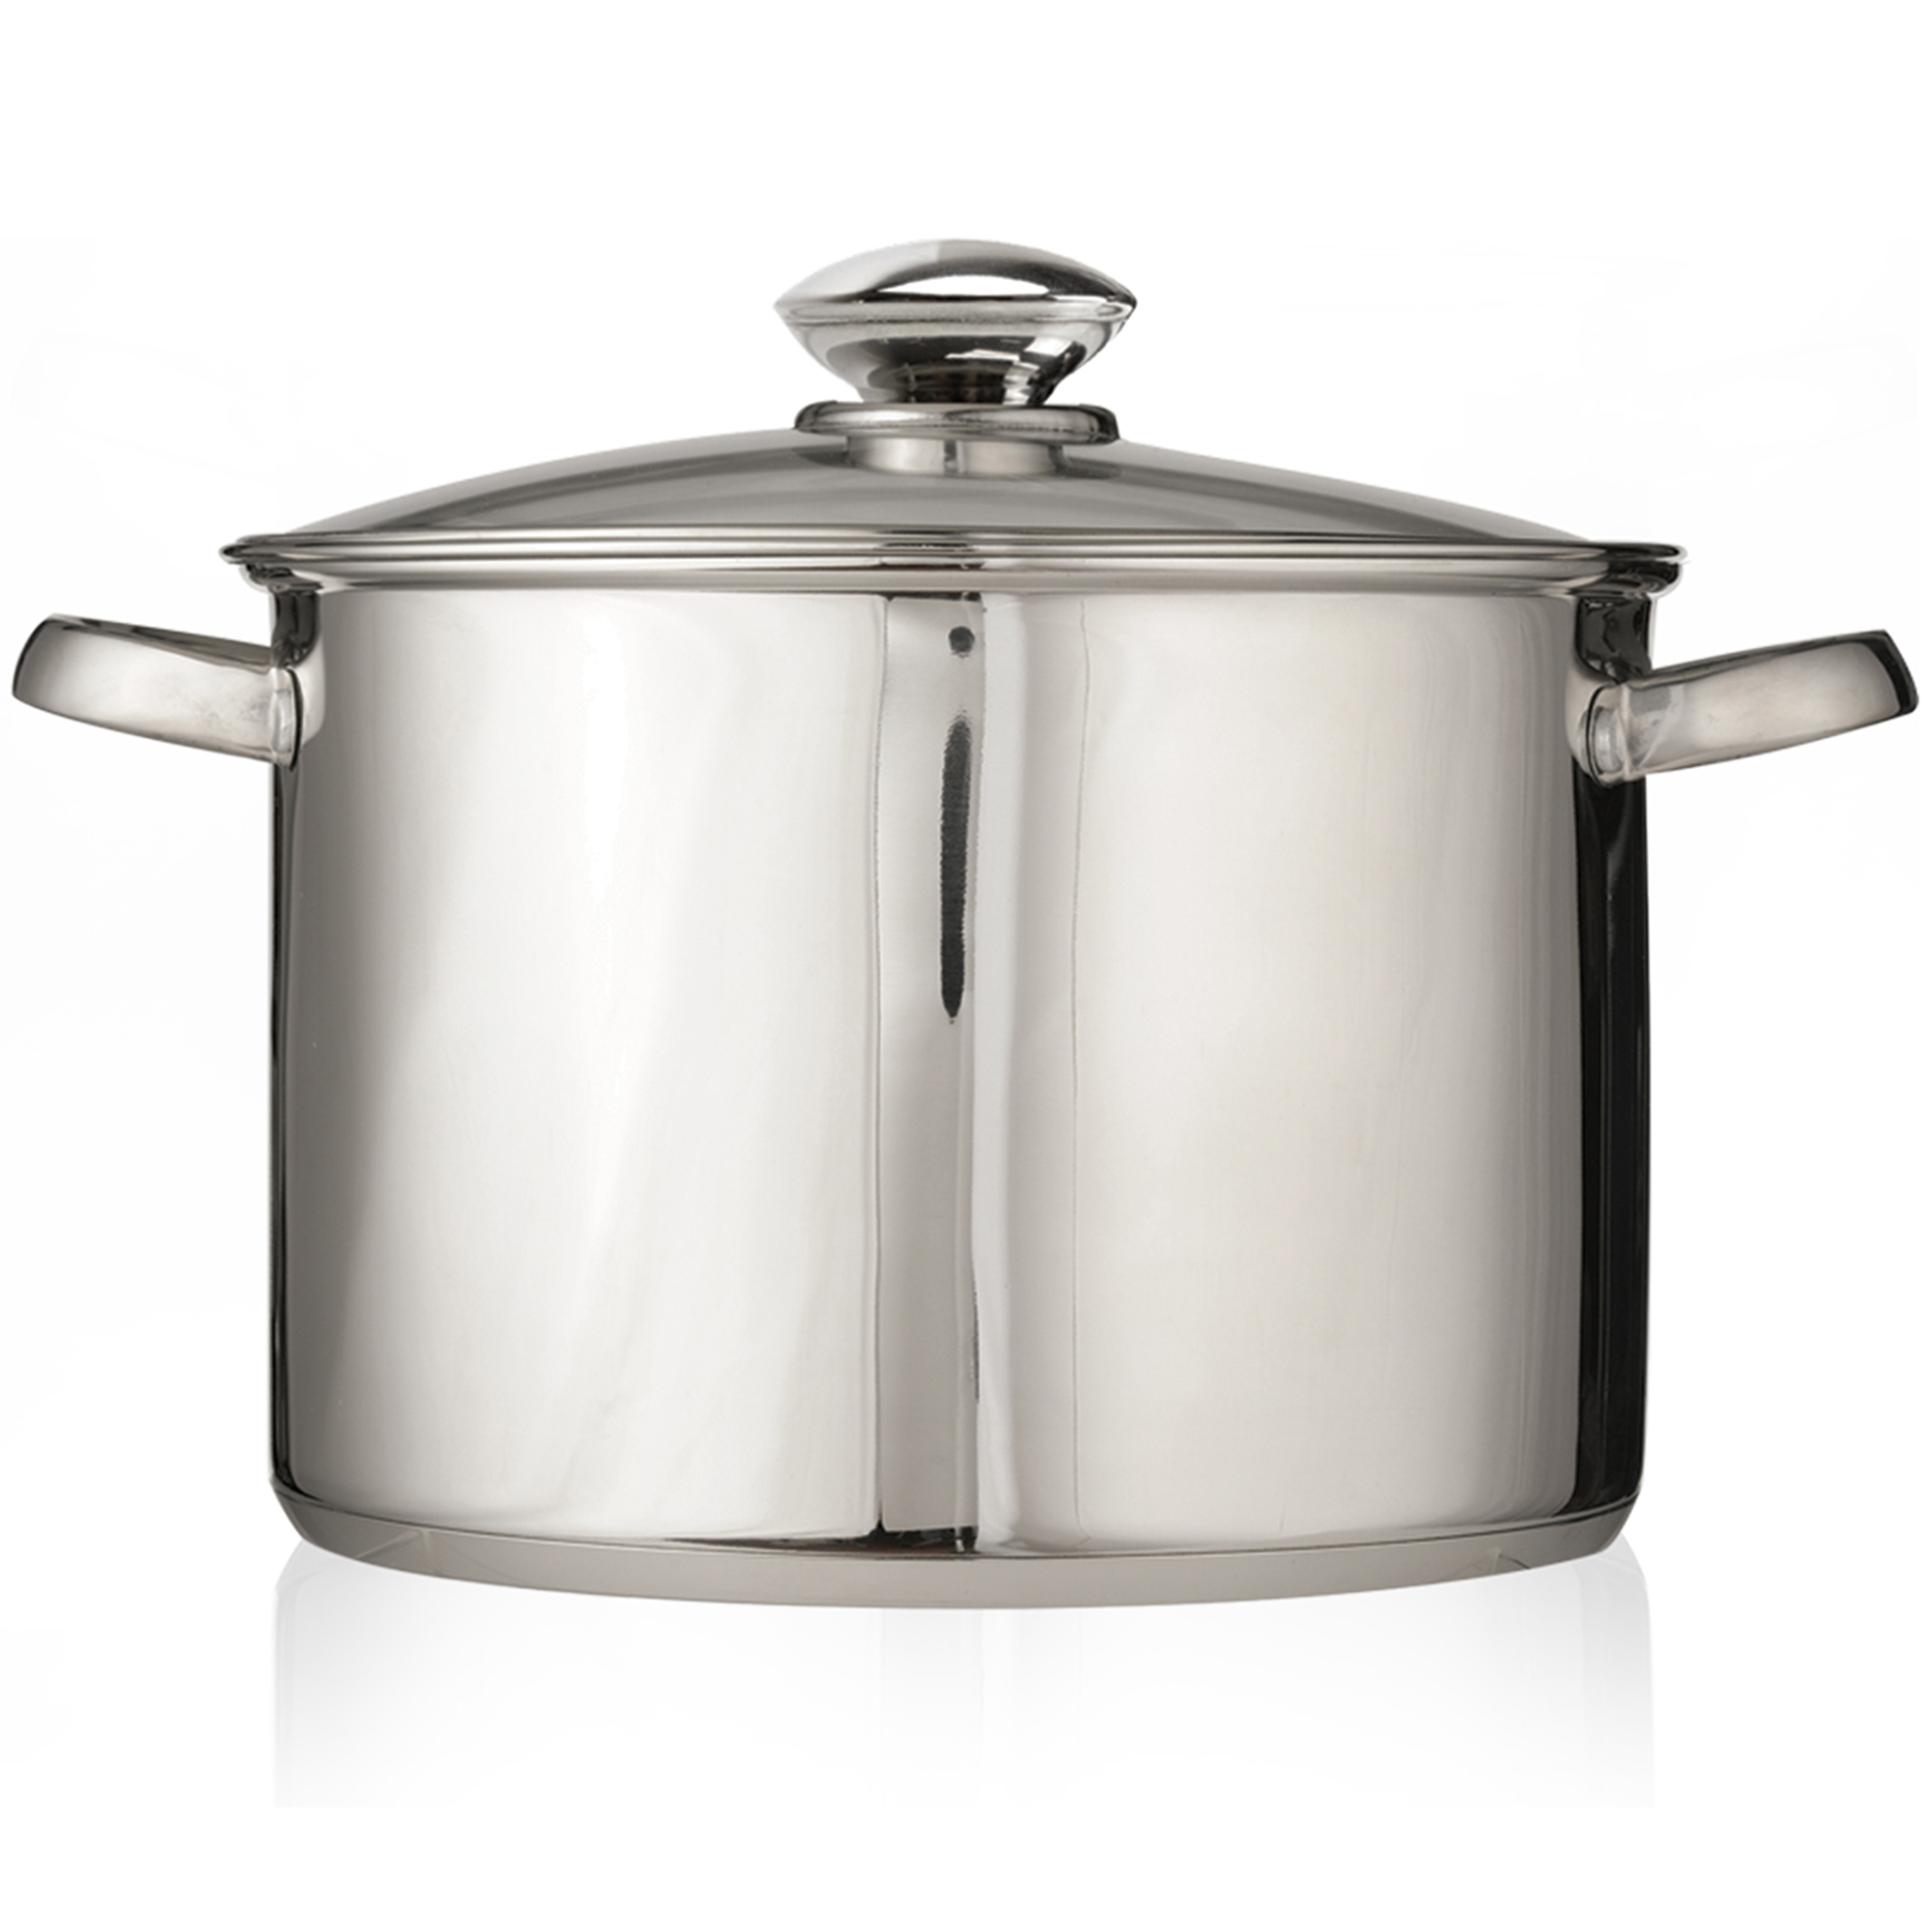 Ecolution  Estl4512 Pure Intentsions Steel Stock Pot With Lid